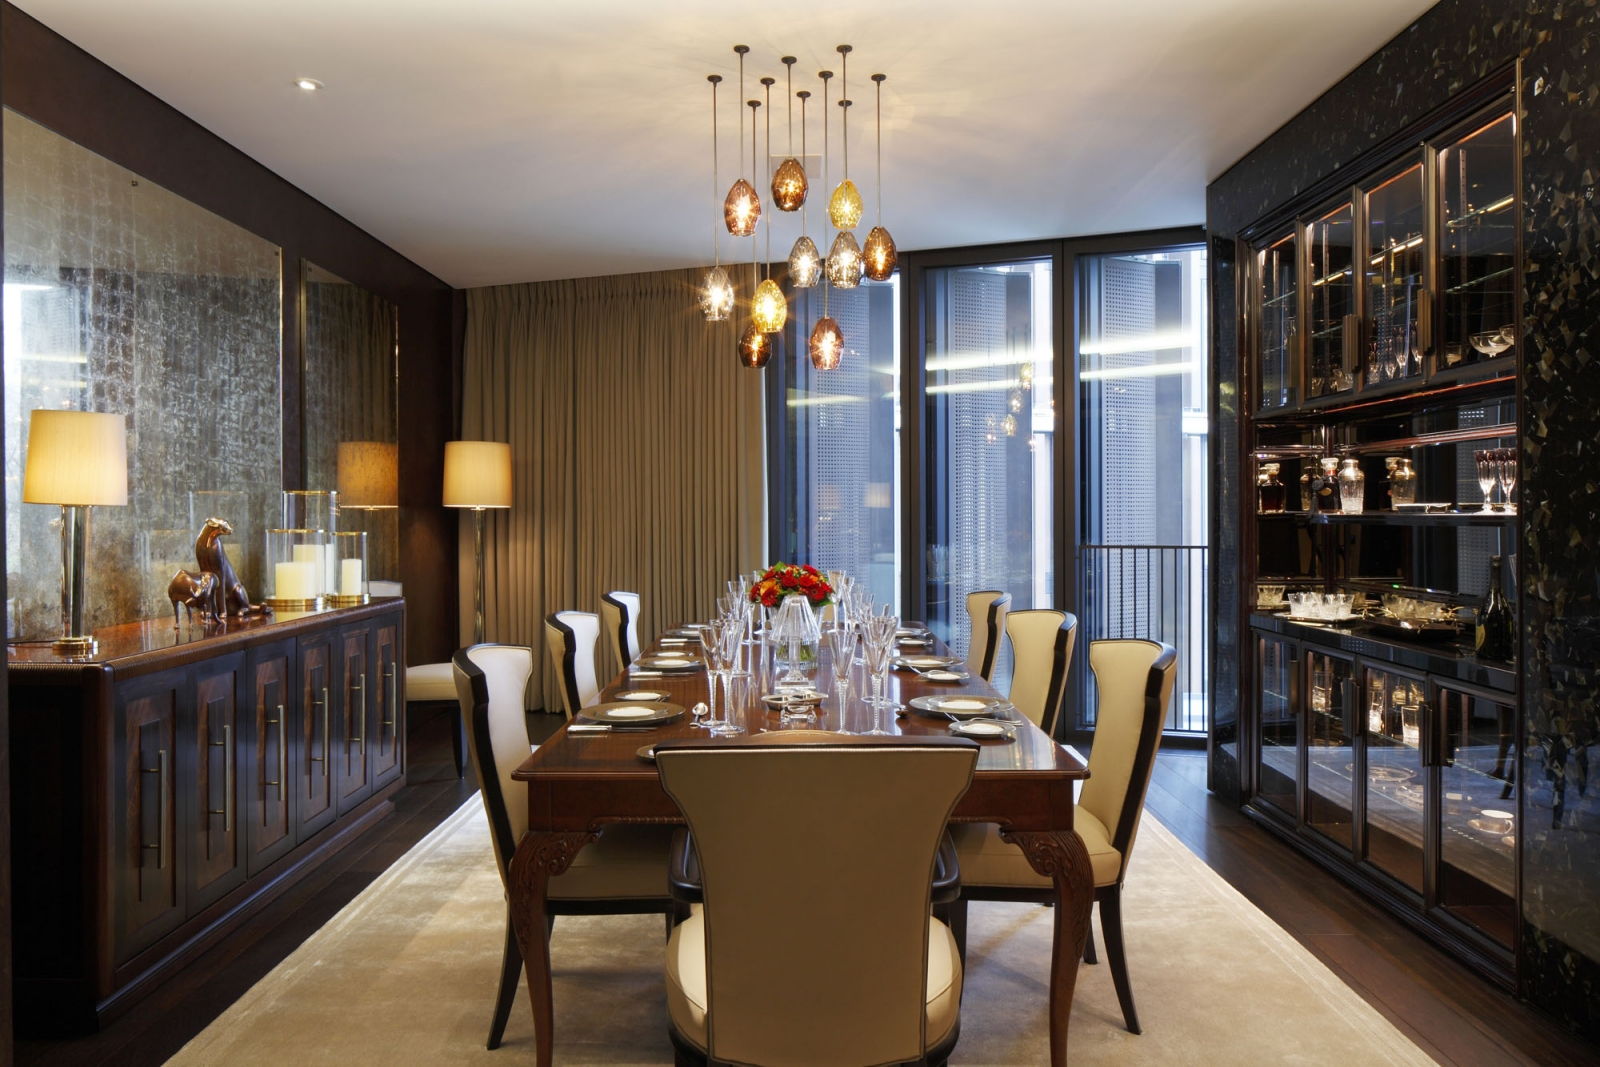 Casa forma design portfolio one hyde park knightsbridge for Casa design